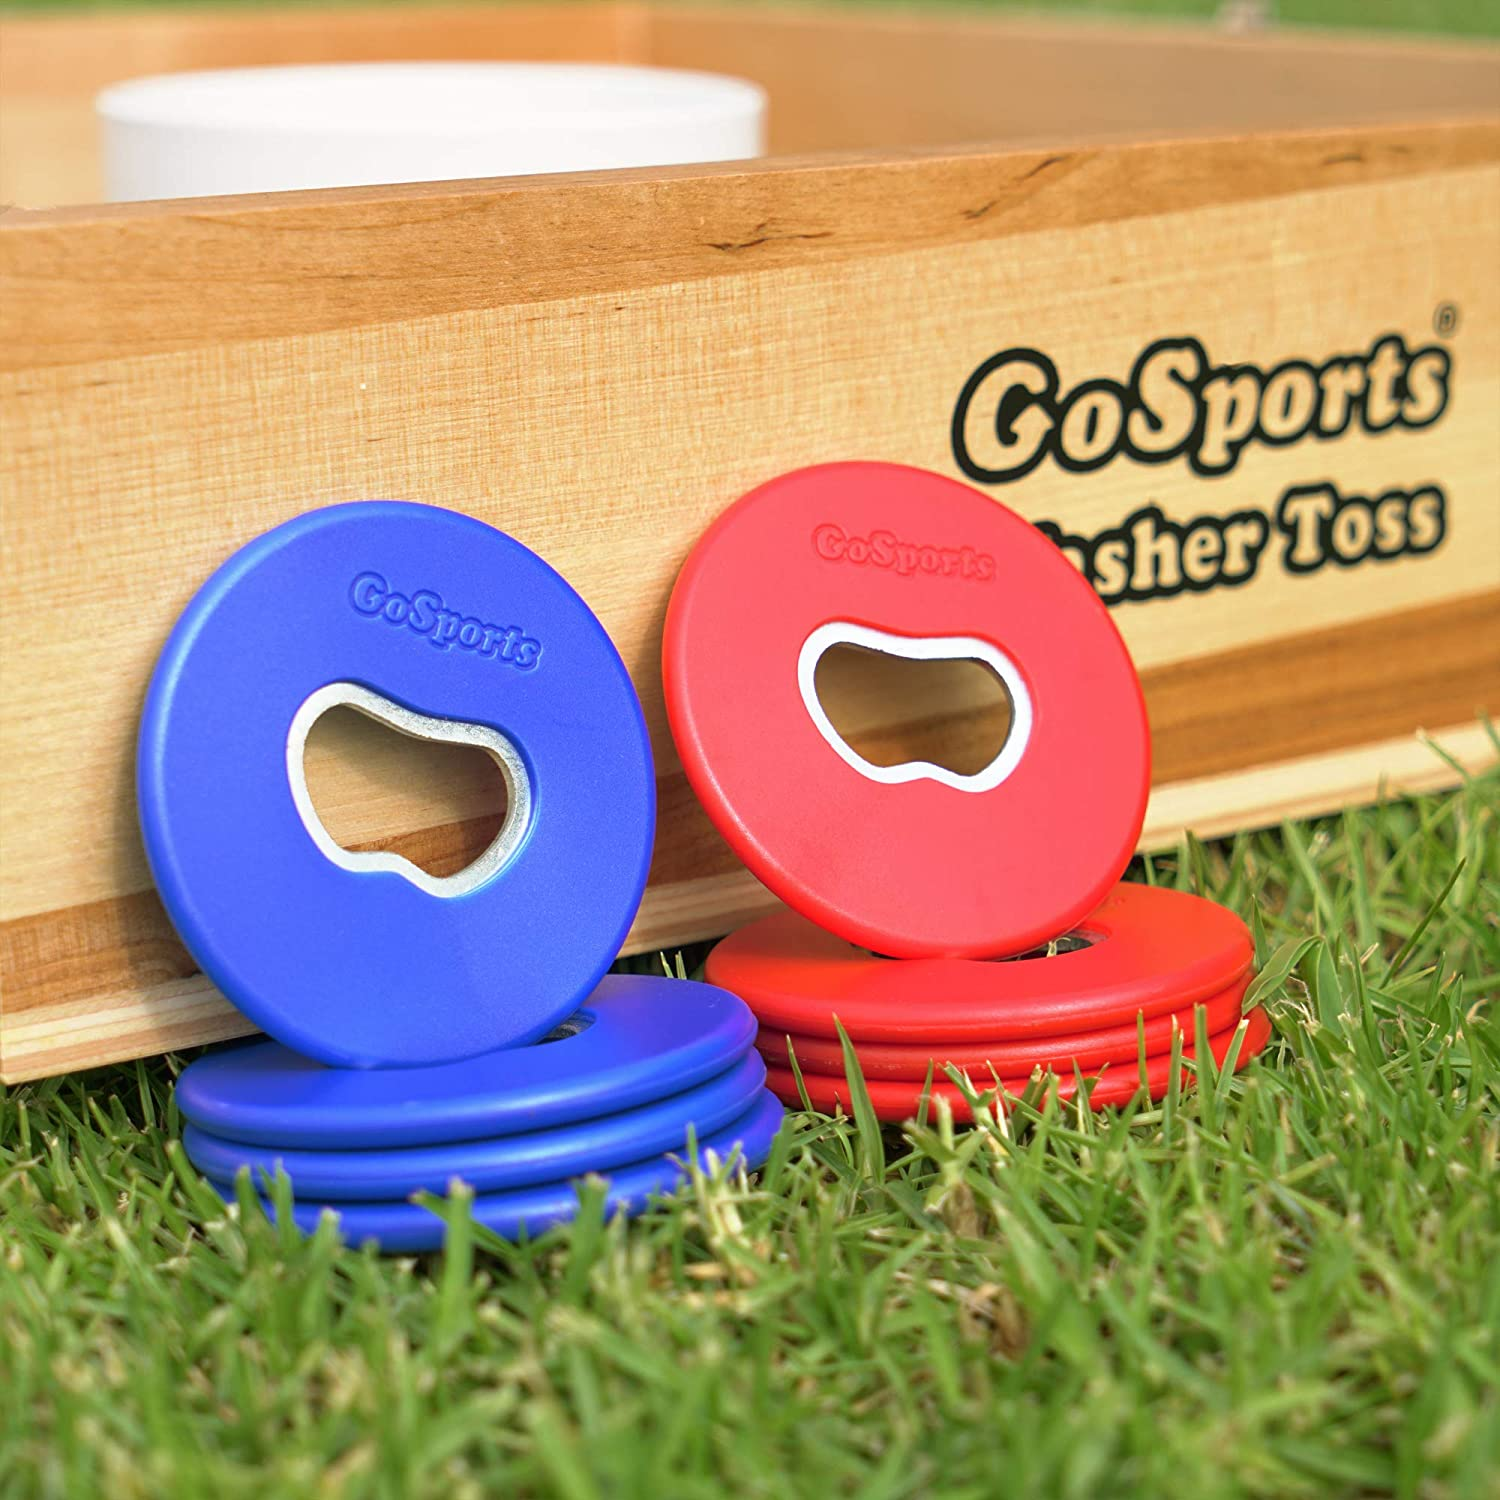 Choose from Steel Plastic Coated Steel or Bottle Opener Washers Sets of 8 Washers GoSports Replacement Washer Sets for Washer Toss